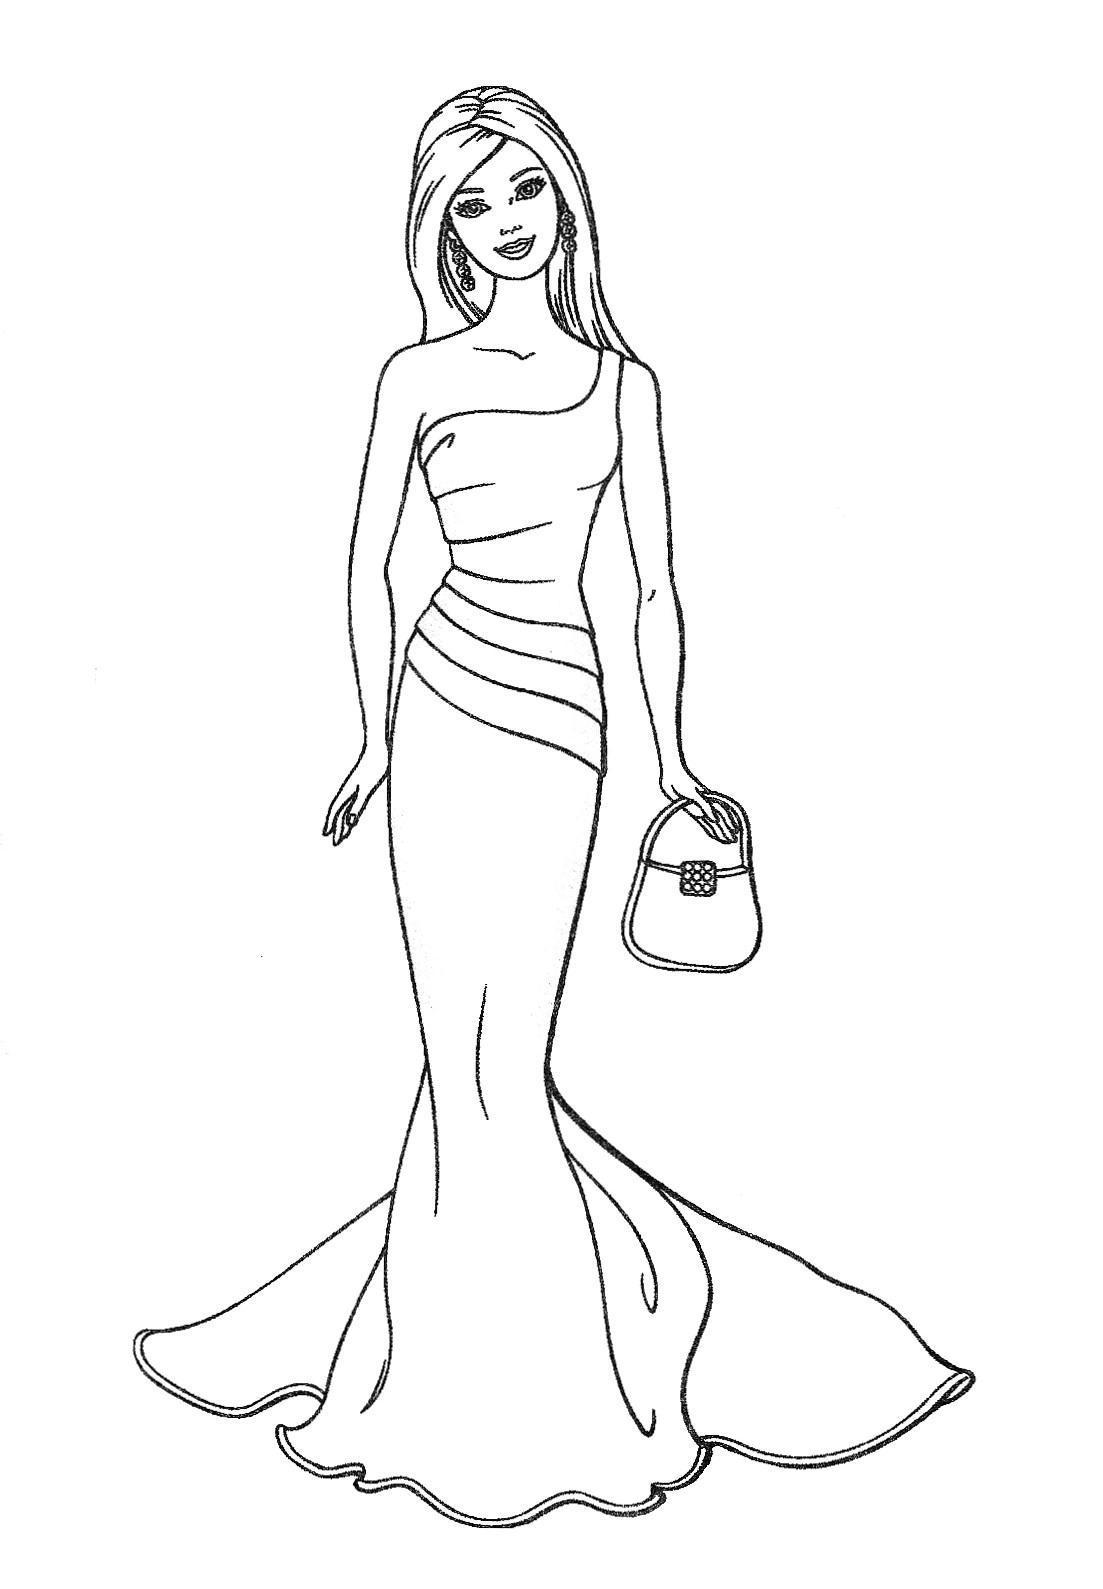 barbie coloring pages on coloring book info | BARBIE COLORING PAGES